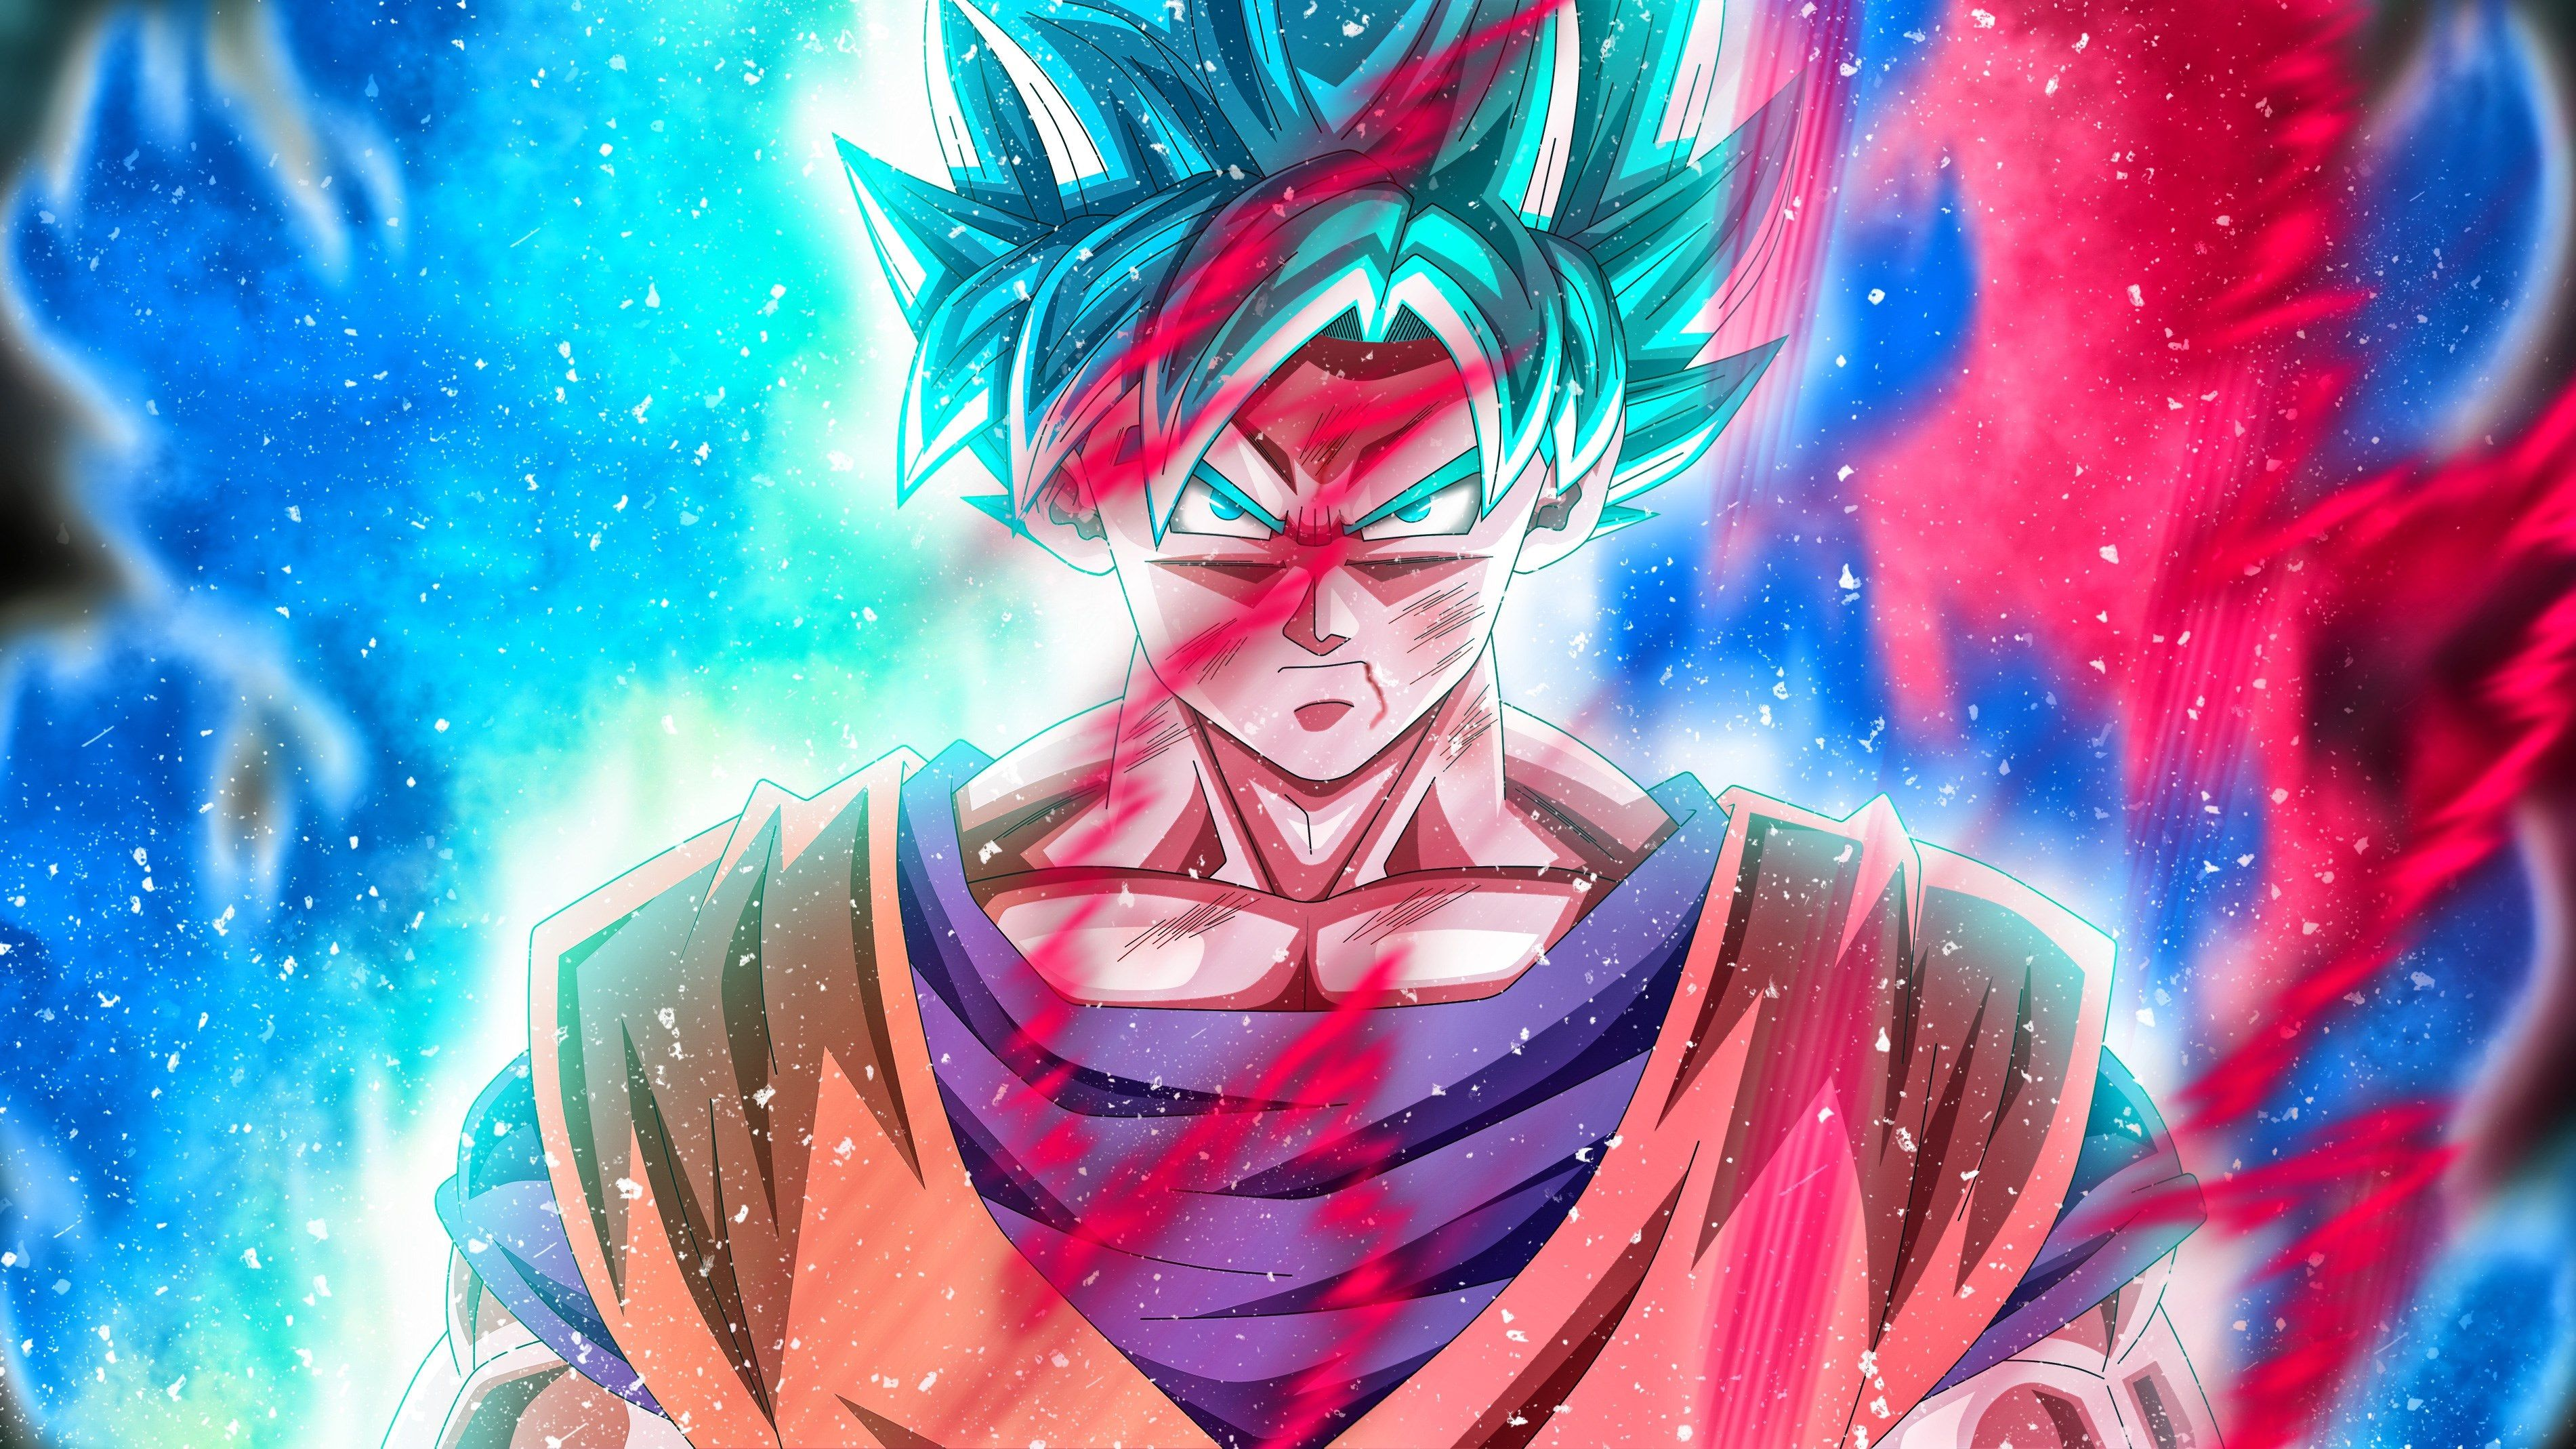 3802x2138 Dragon Ball Super 4k Free Hd Wallpaper Free Download Goku Super Saiyan Super Anime Goku Super